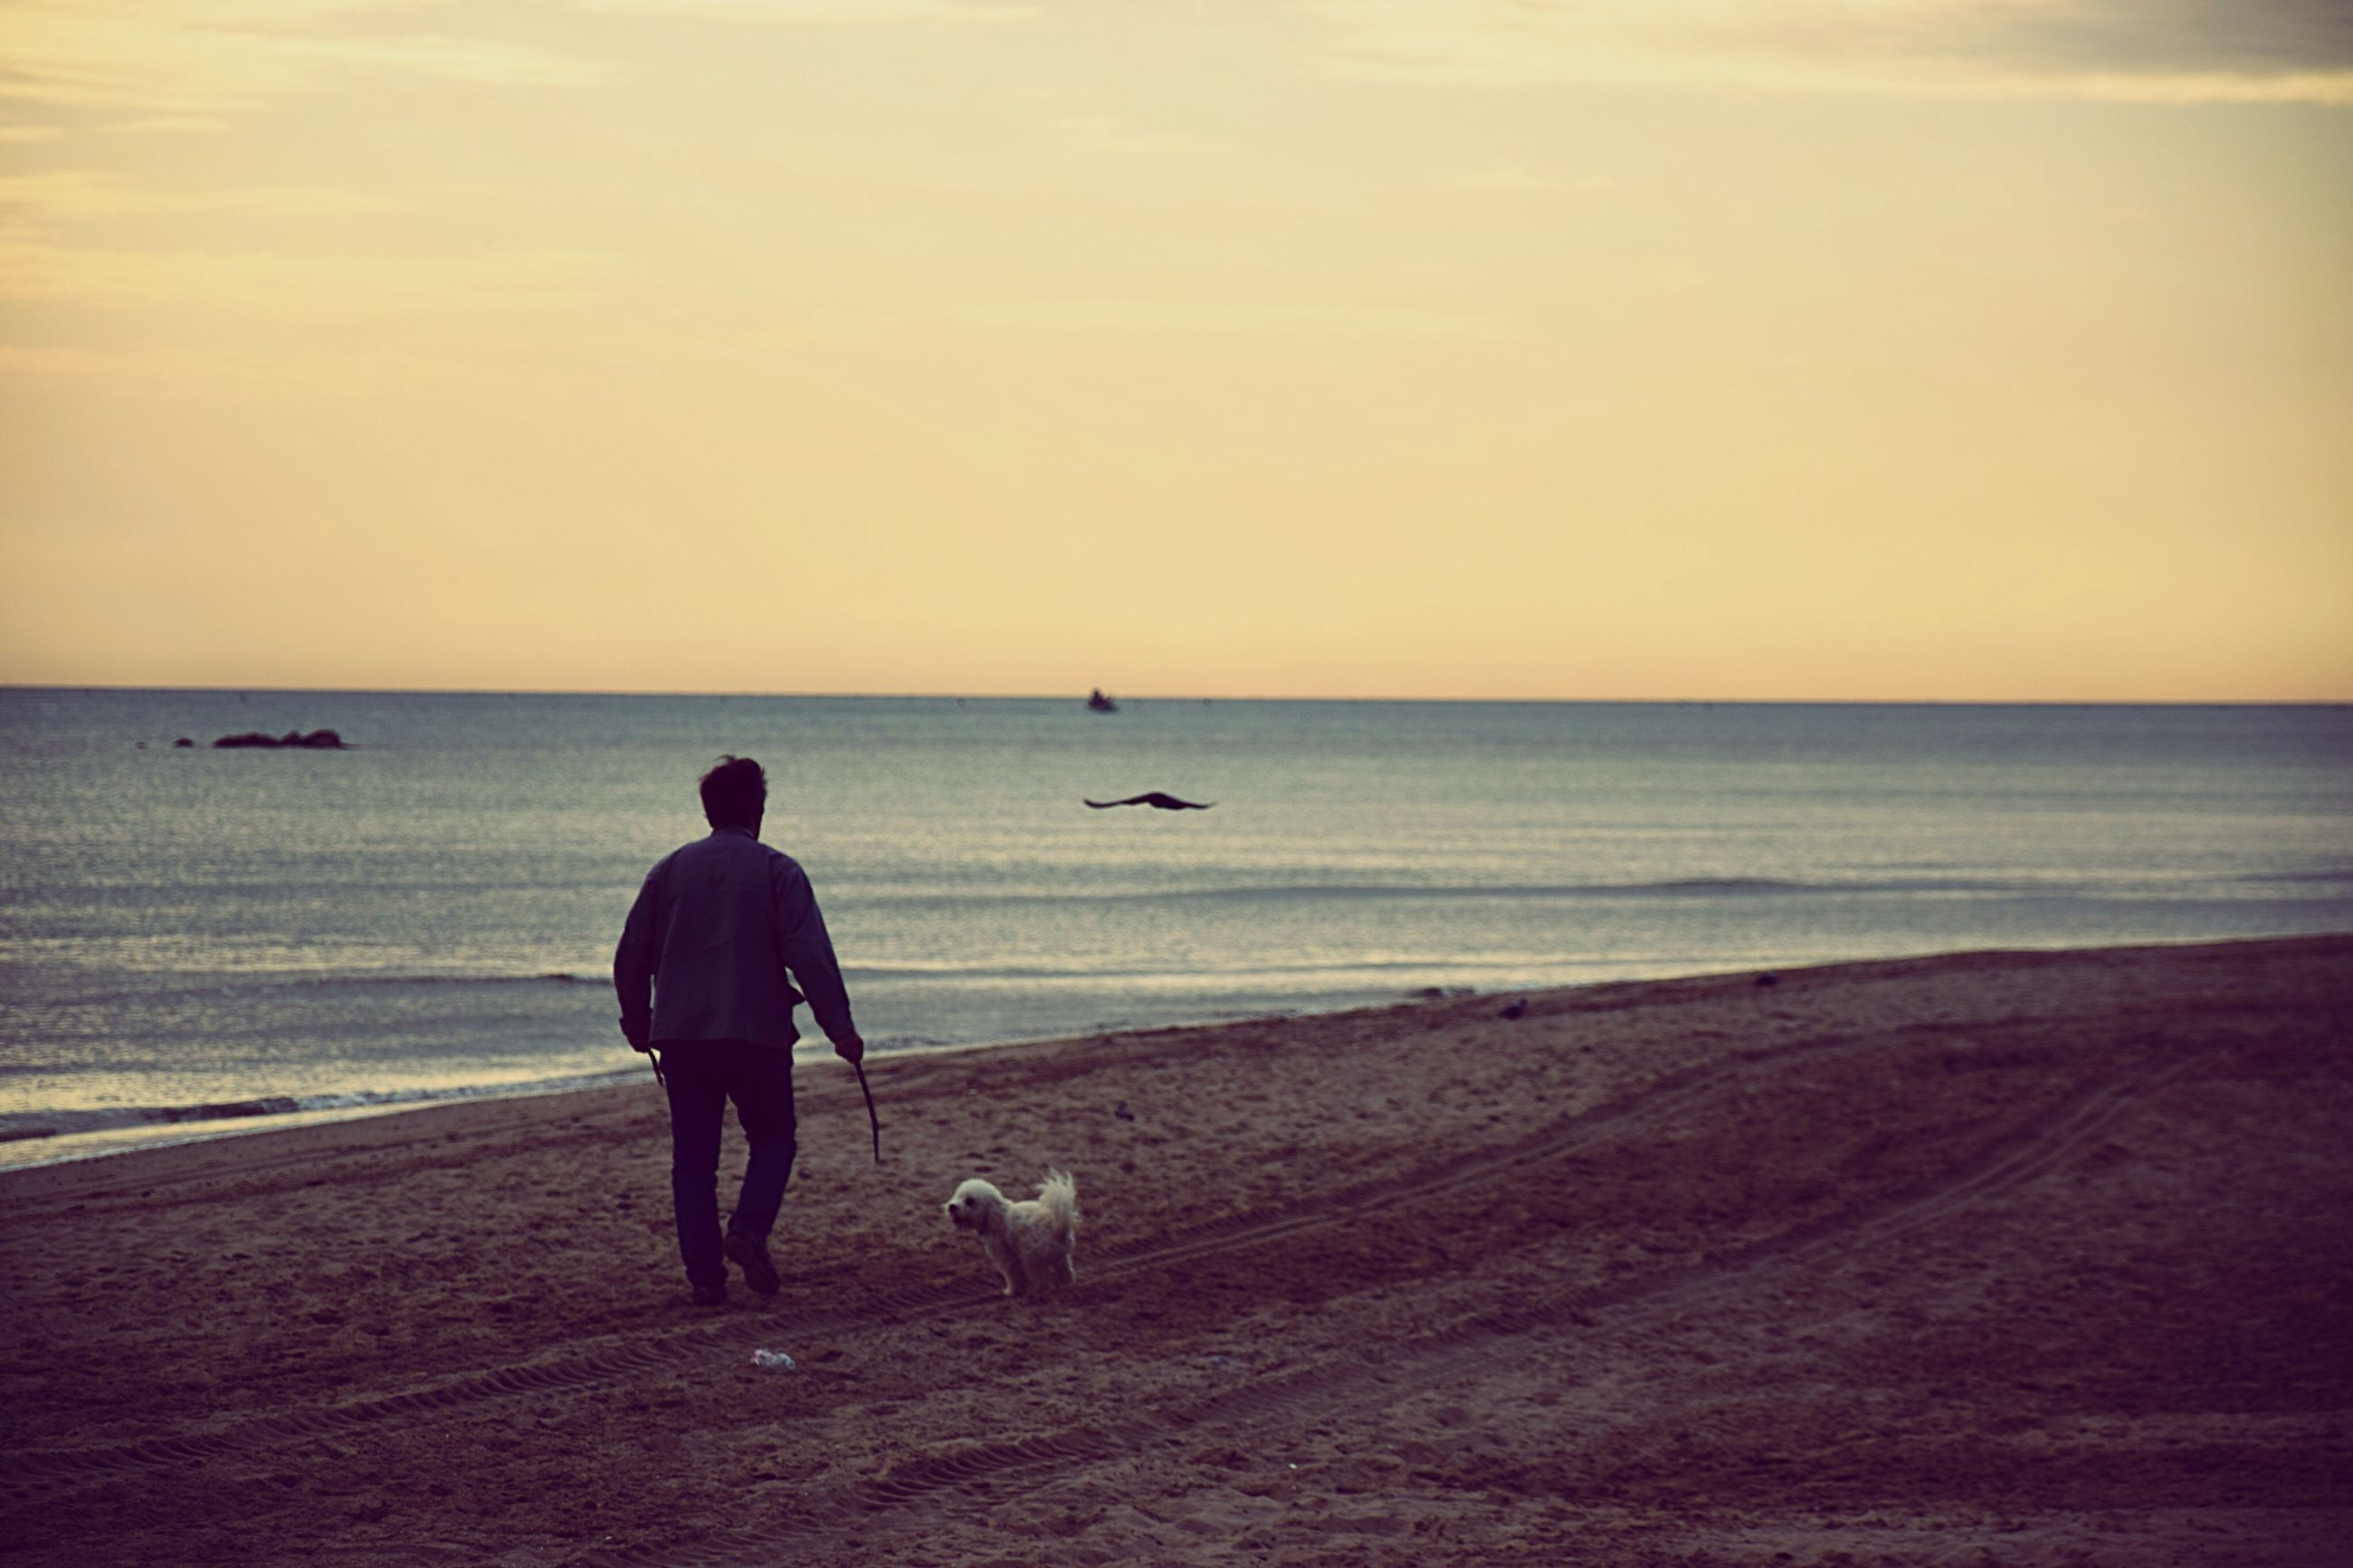 sea, horizon over water, beach, water, shore, men, lifestyles, full length, sand, scenics, leisure activity, rear view, tranquil scene, beauty in nature, tranquility, clear sky, nature, copy space, sky